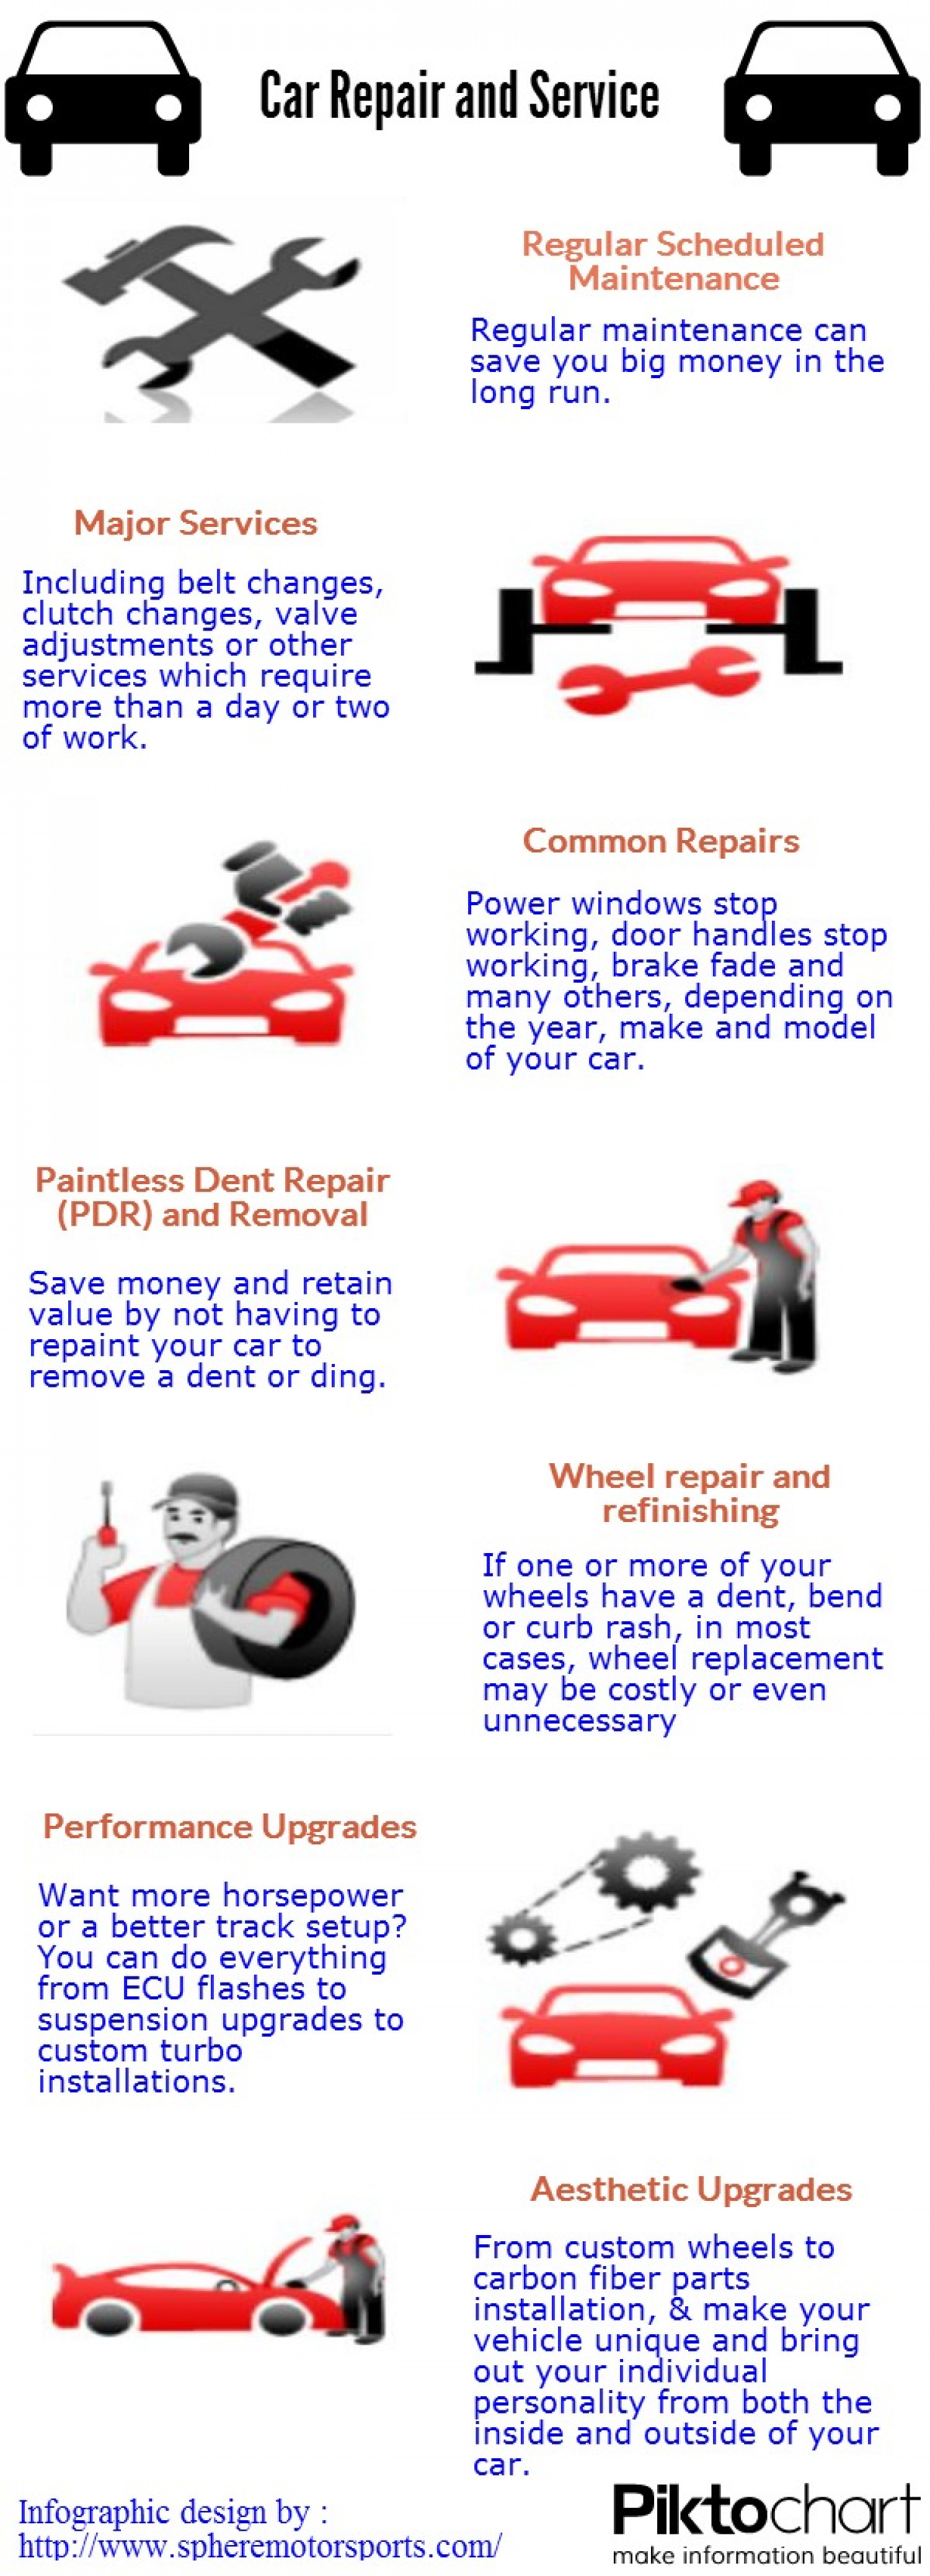 Car Repair & Service Shop in Houston Infographic